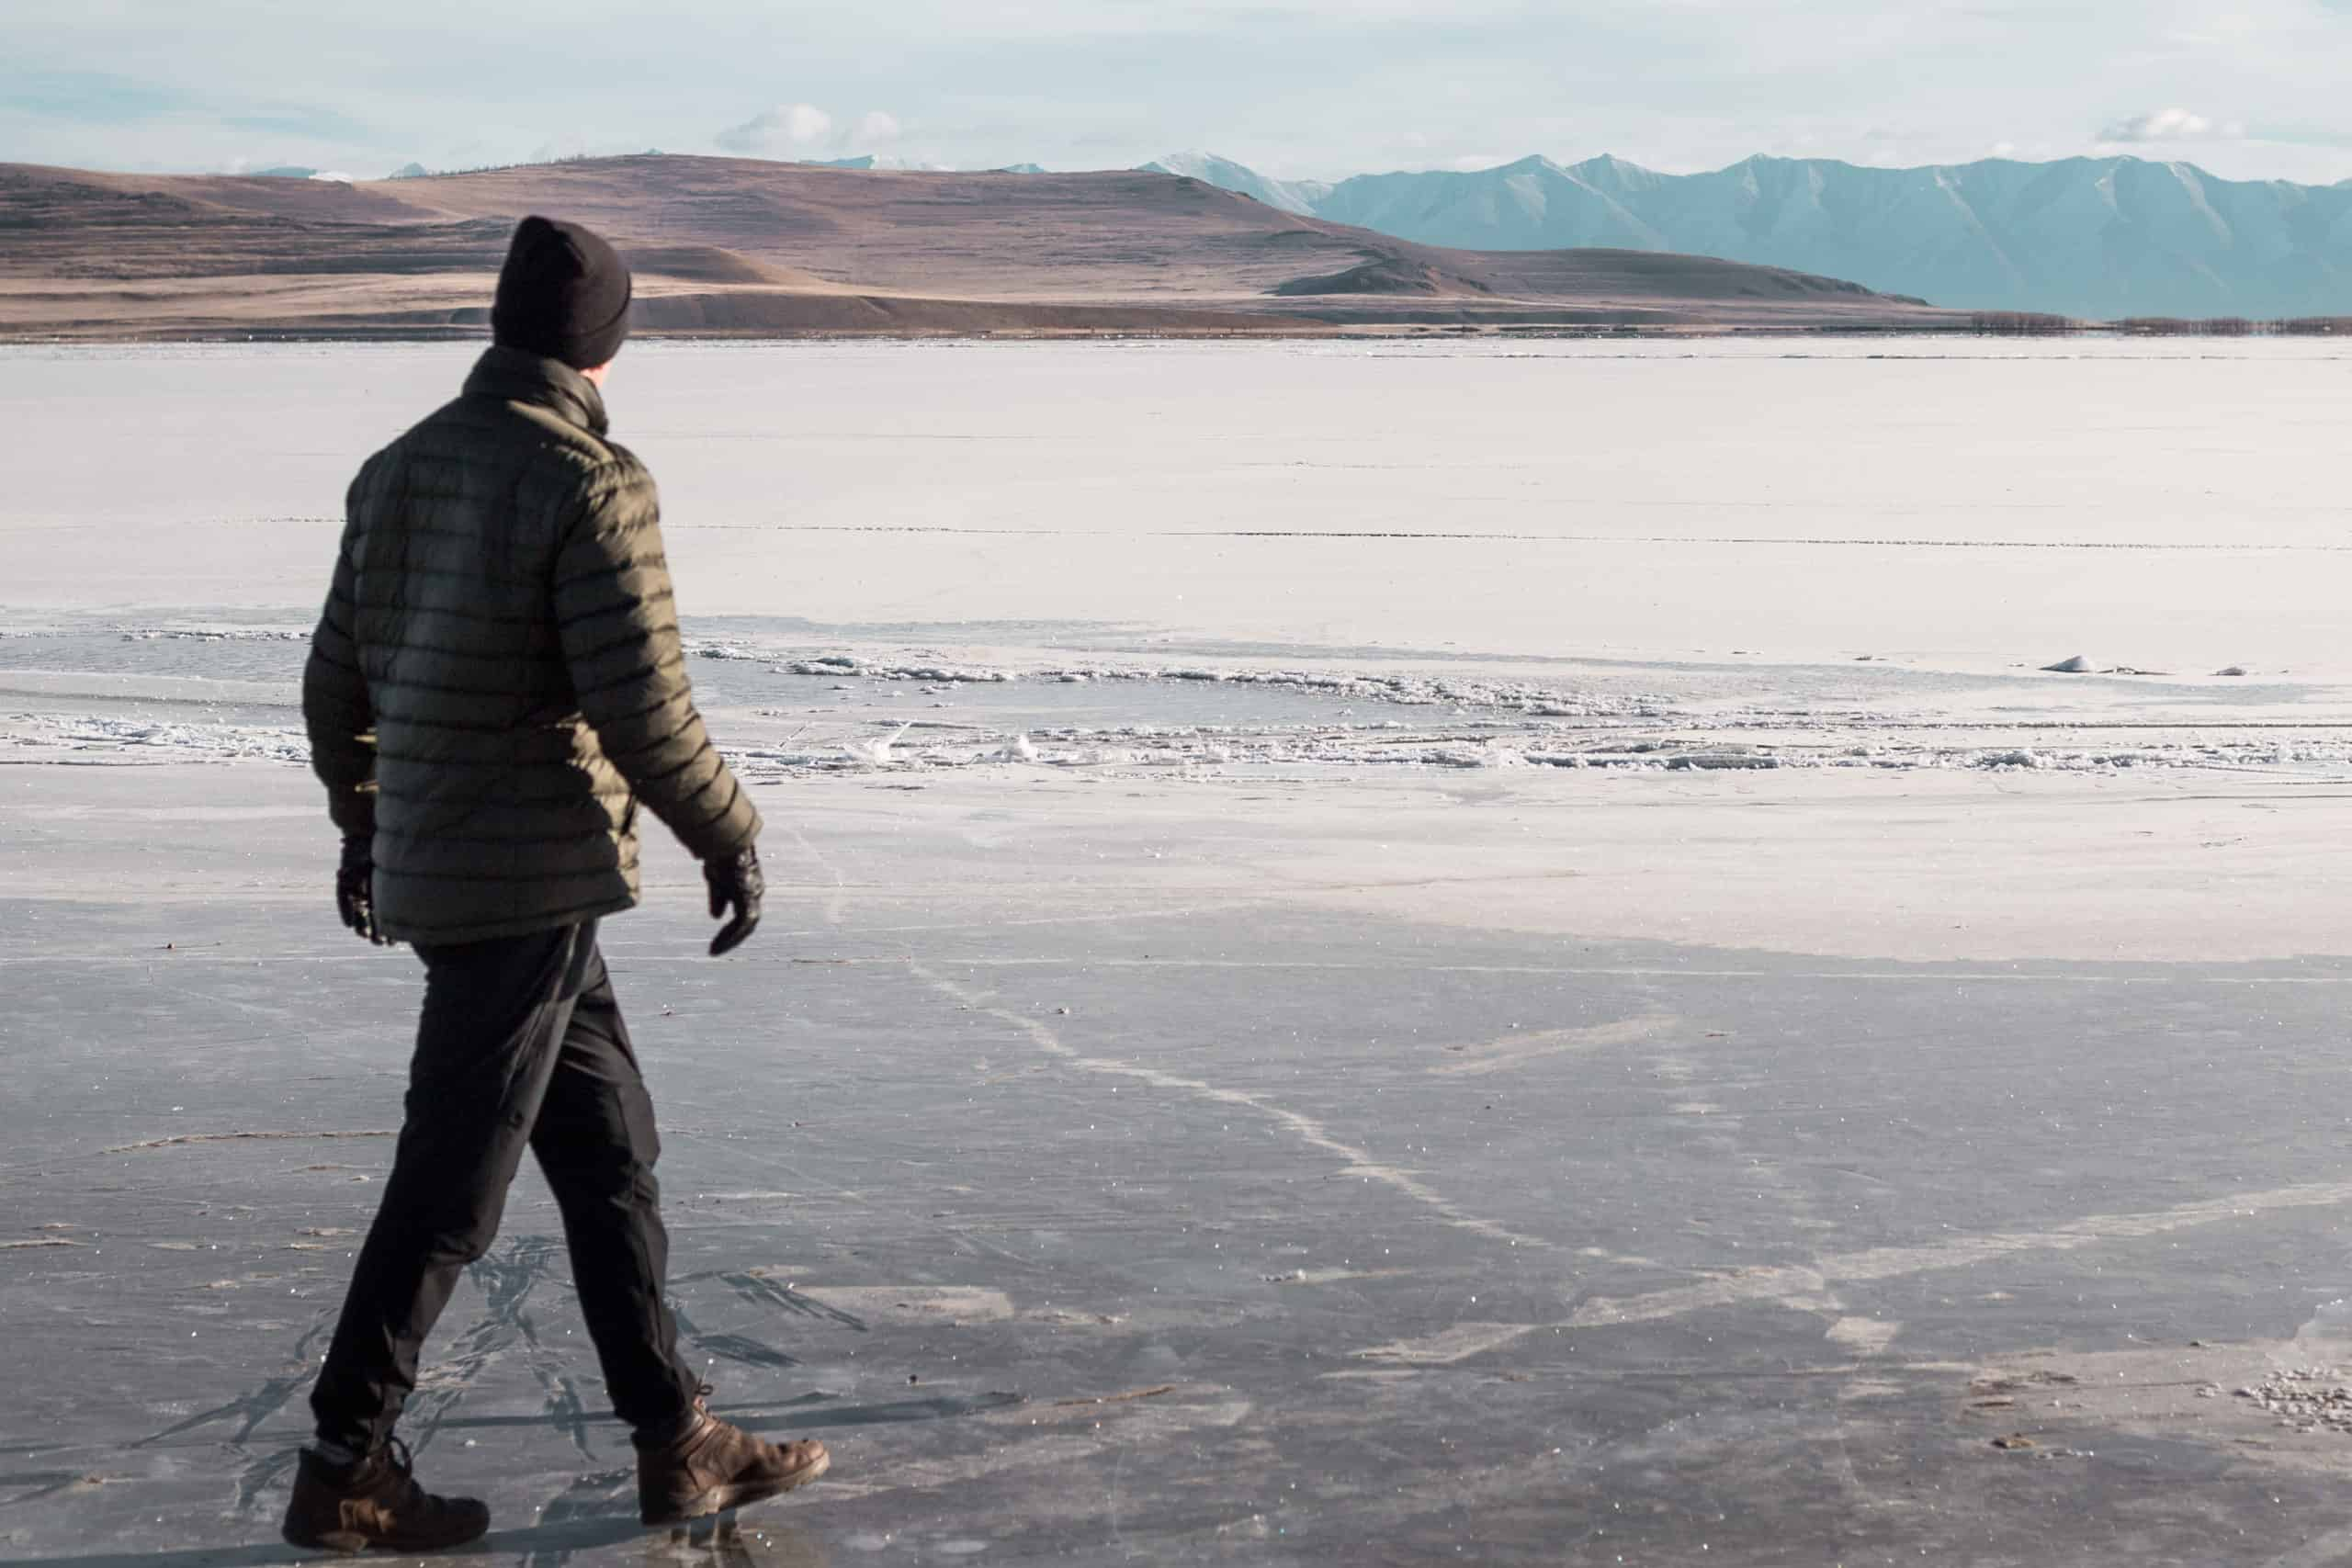 Walking on a frozen lake with warm hat and gloves